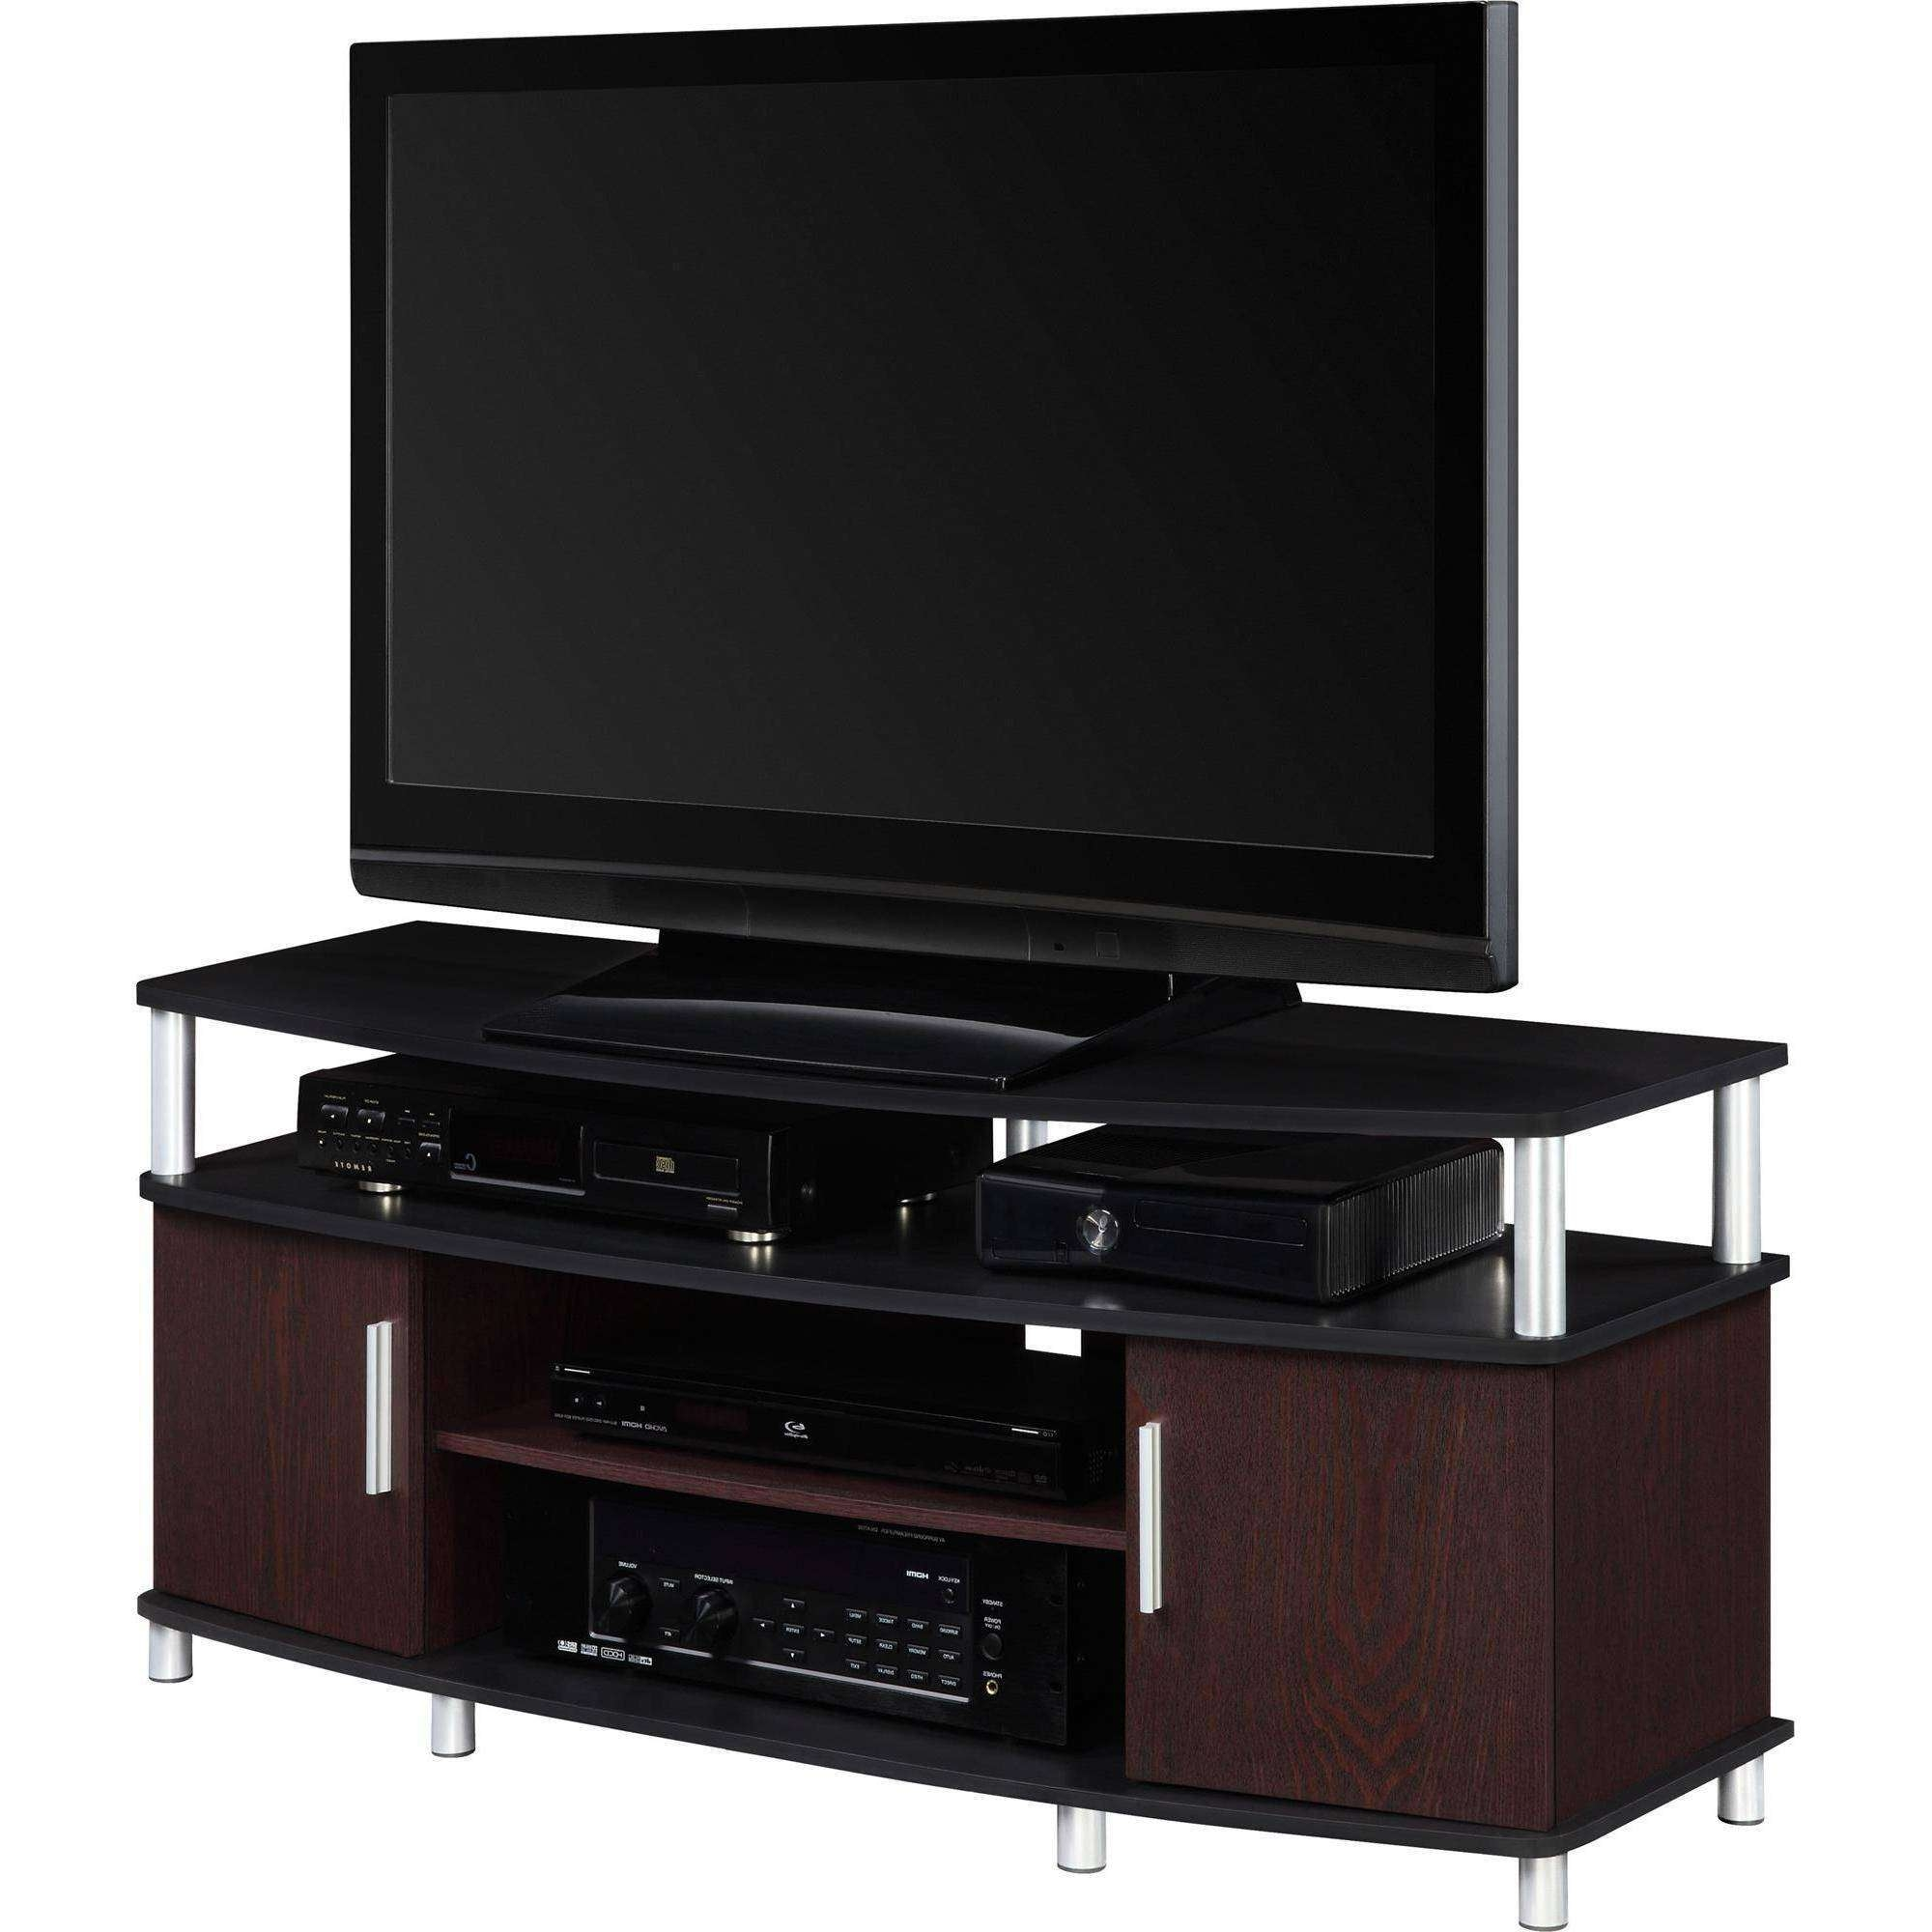 Great Corner Tv Stands For 50 Inch Tv 61 In Interior Decor Home In 50 Inch Corner Tv Cabinets (View 16 of 20)